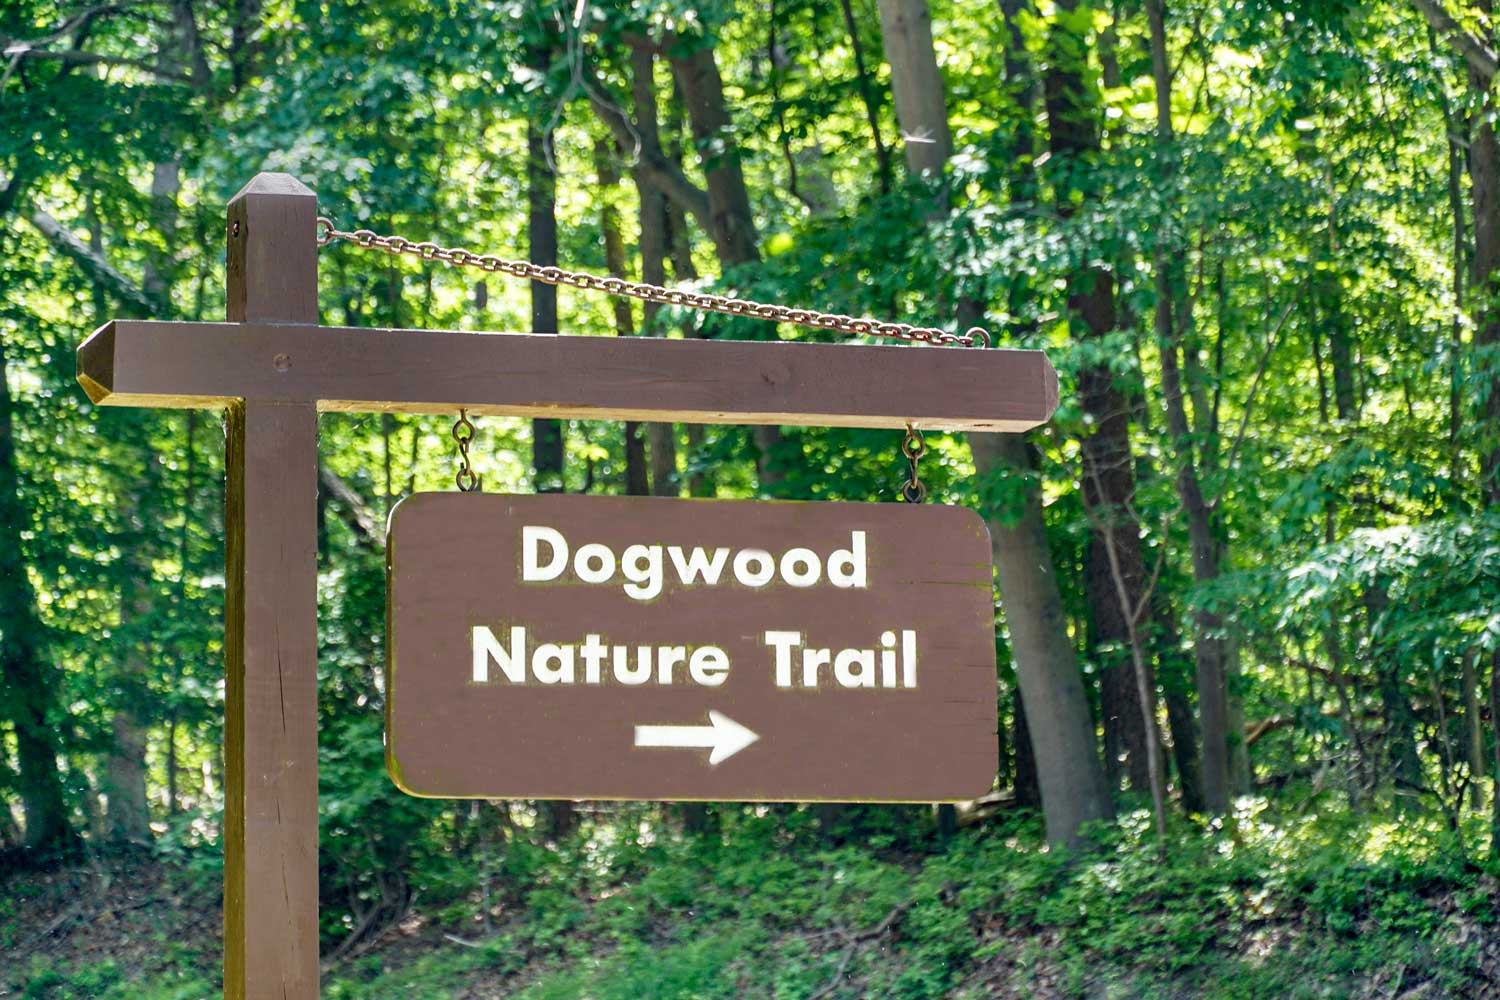 10 minutes to Dogwood Nature Trail at Greenbelt Park